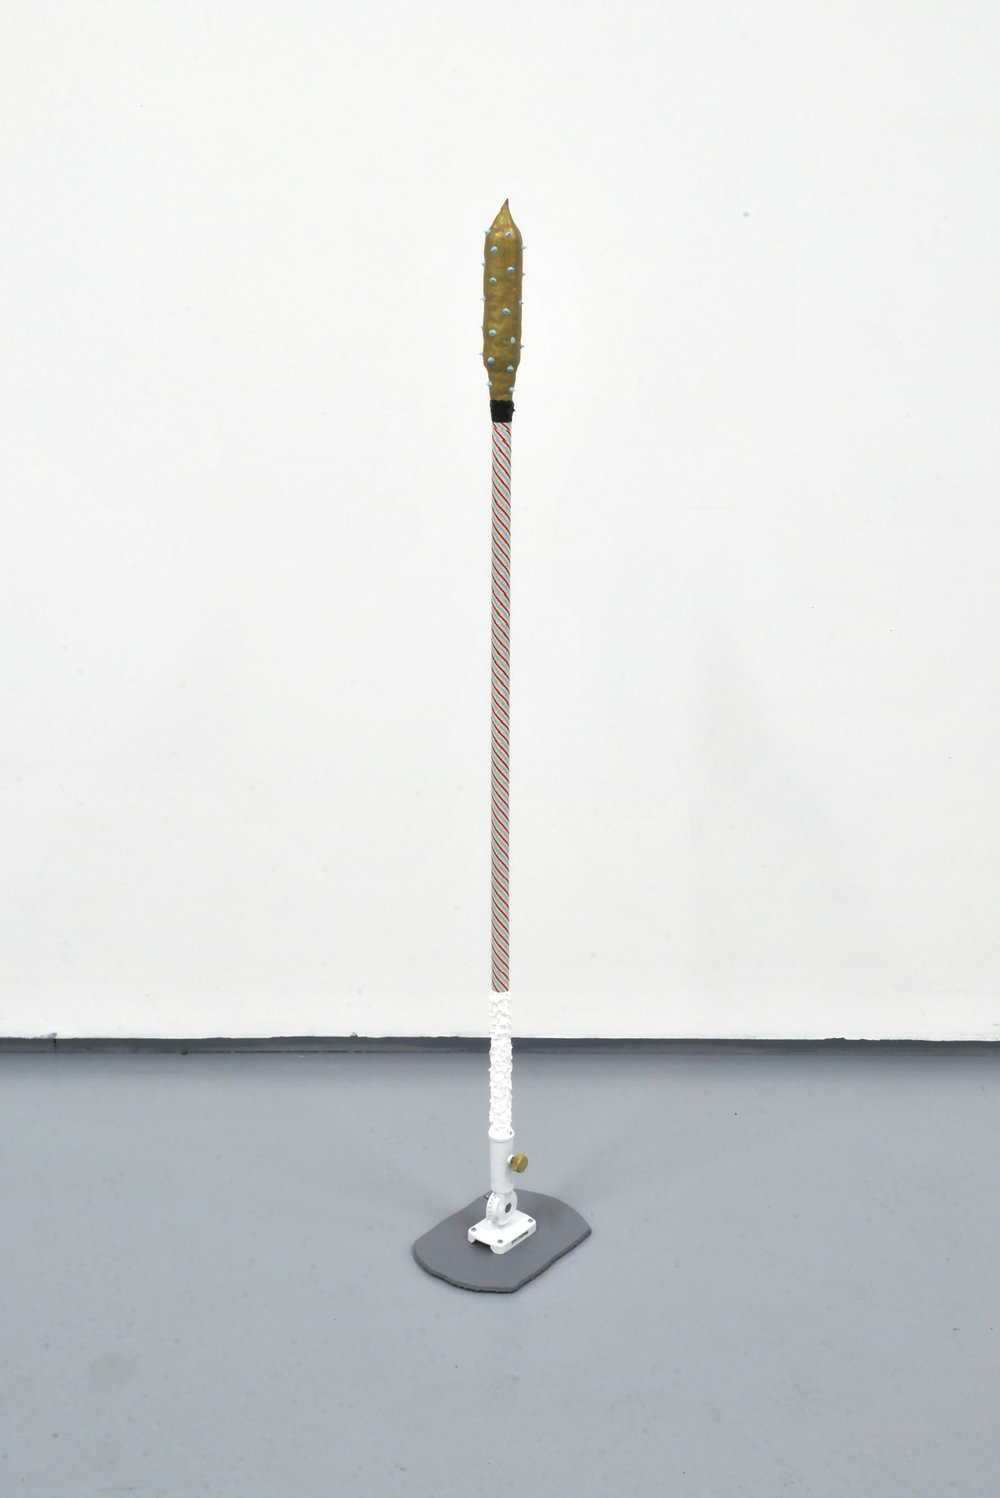 Pole (The Russian's Hockey Stick)  Acrylic, enamel, sand, fabric tape, wood, metal hardware, MDF  10 x 54 x 7 inches  2014